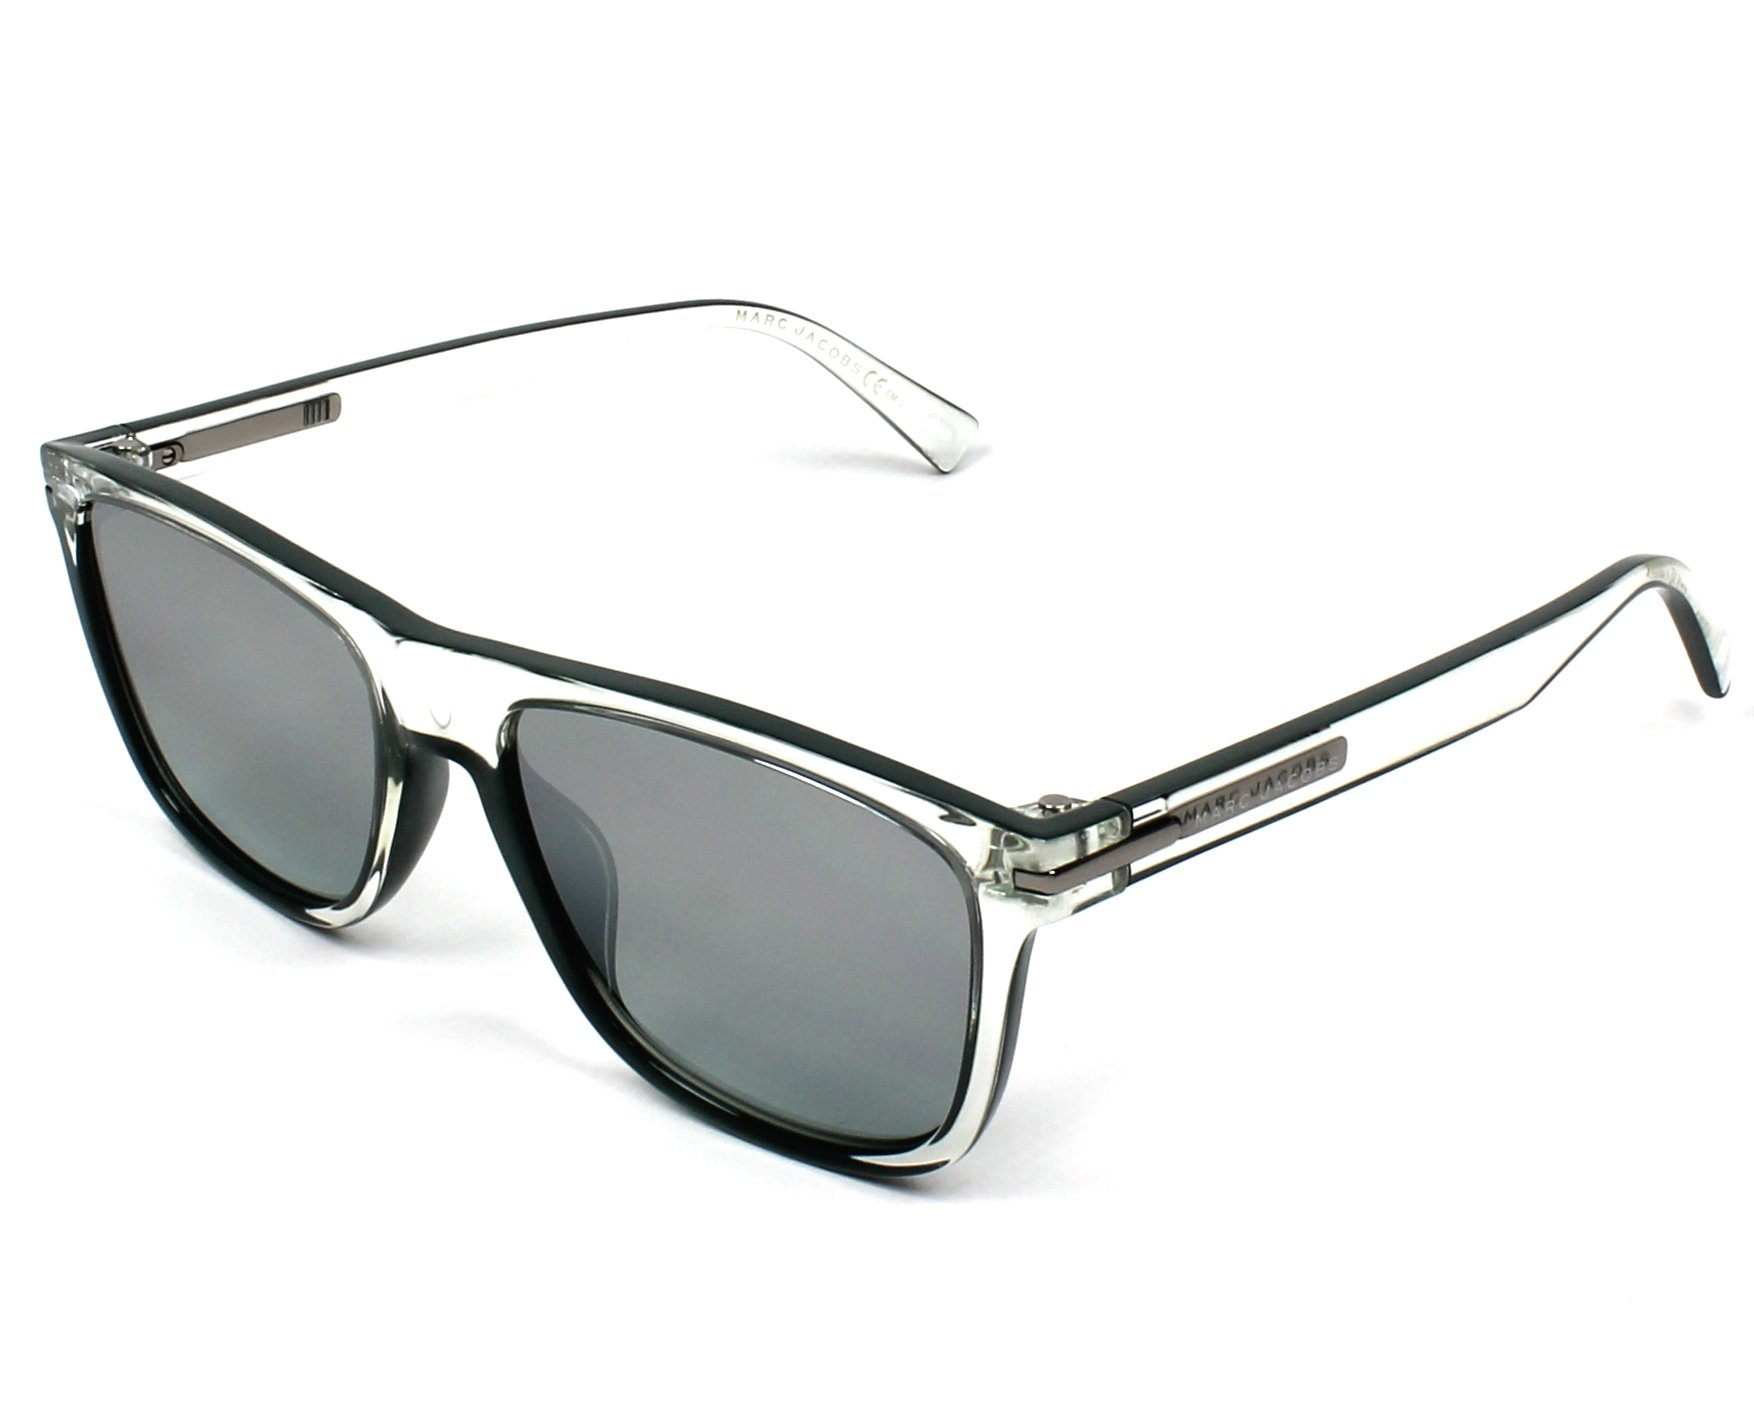 Sunglasses Marc Jacobs MARC-221-S 0OX GY 55-18 Crystal Green d4fadc7b7aaa